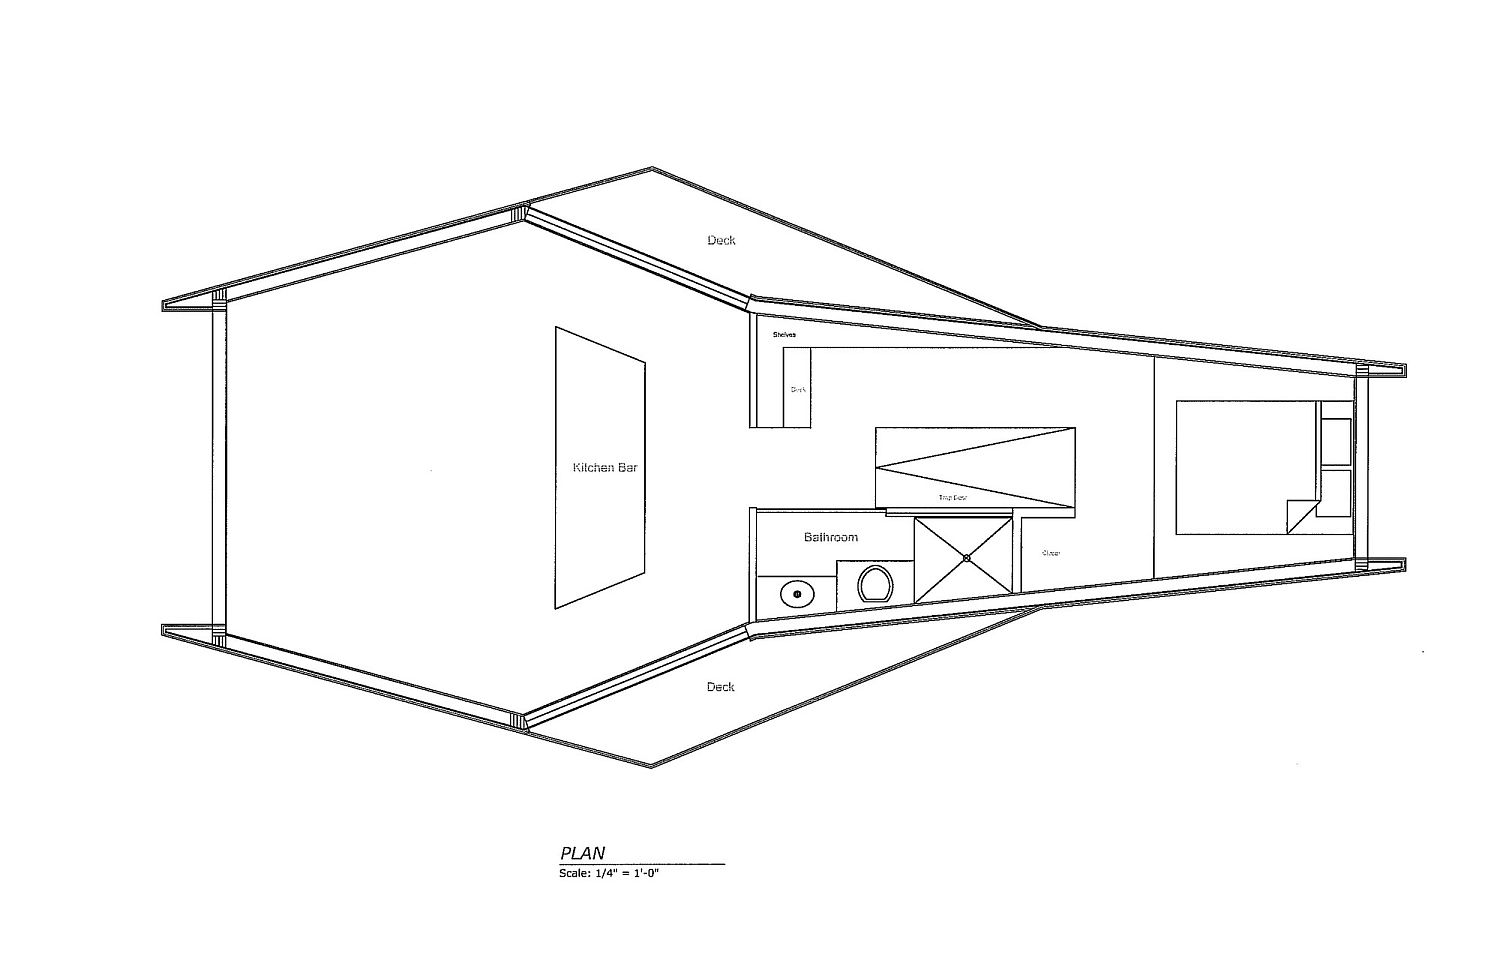 Floor plan of Inhabit treehouse with views of Catskills mountain range